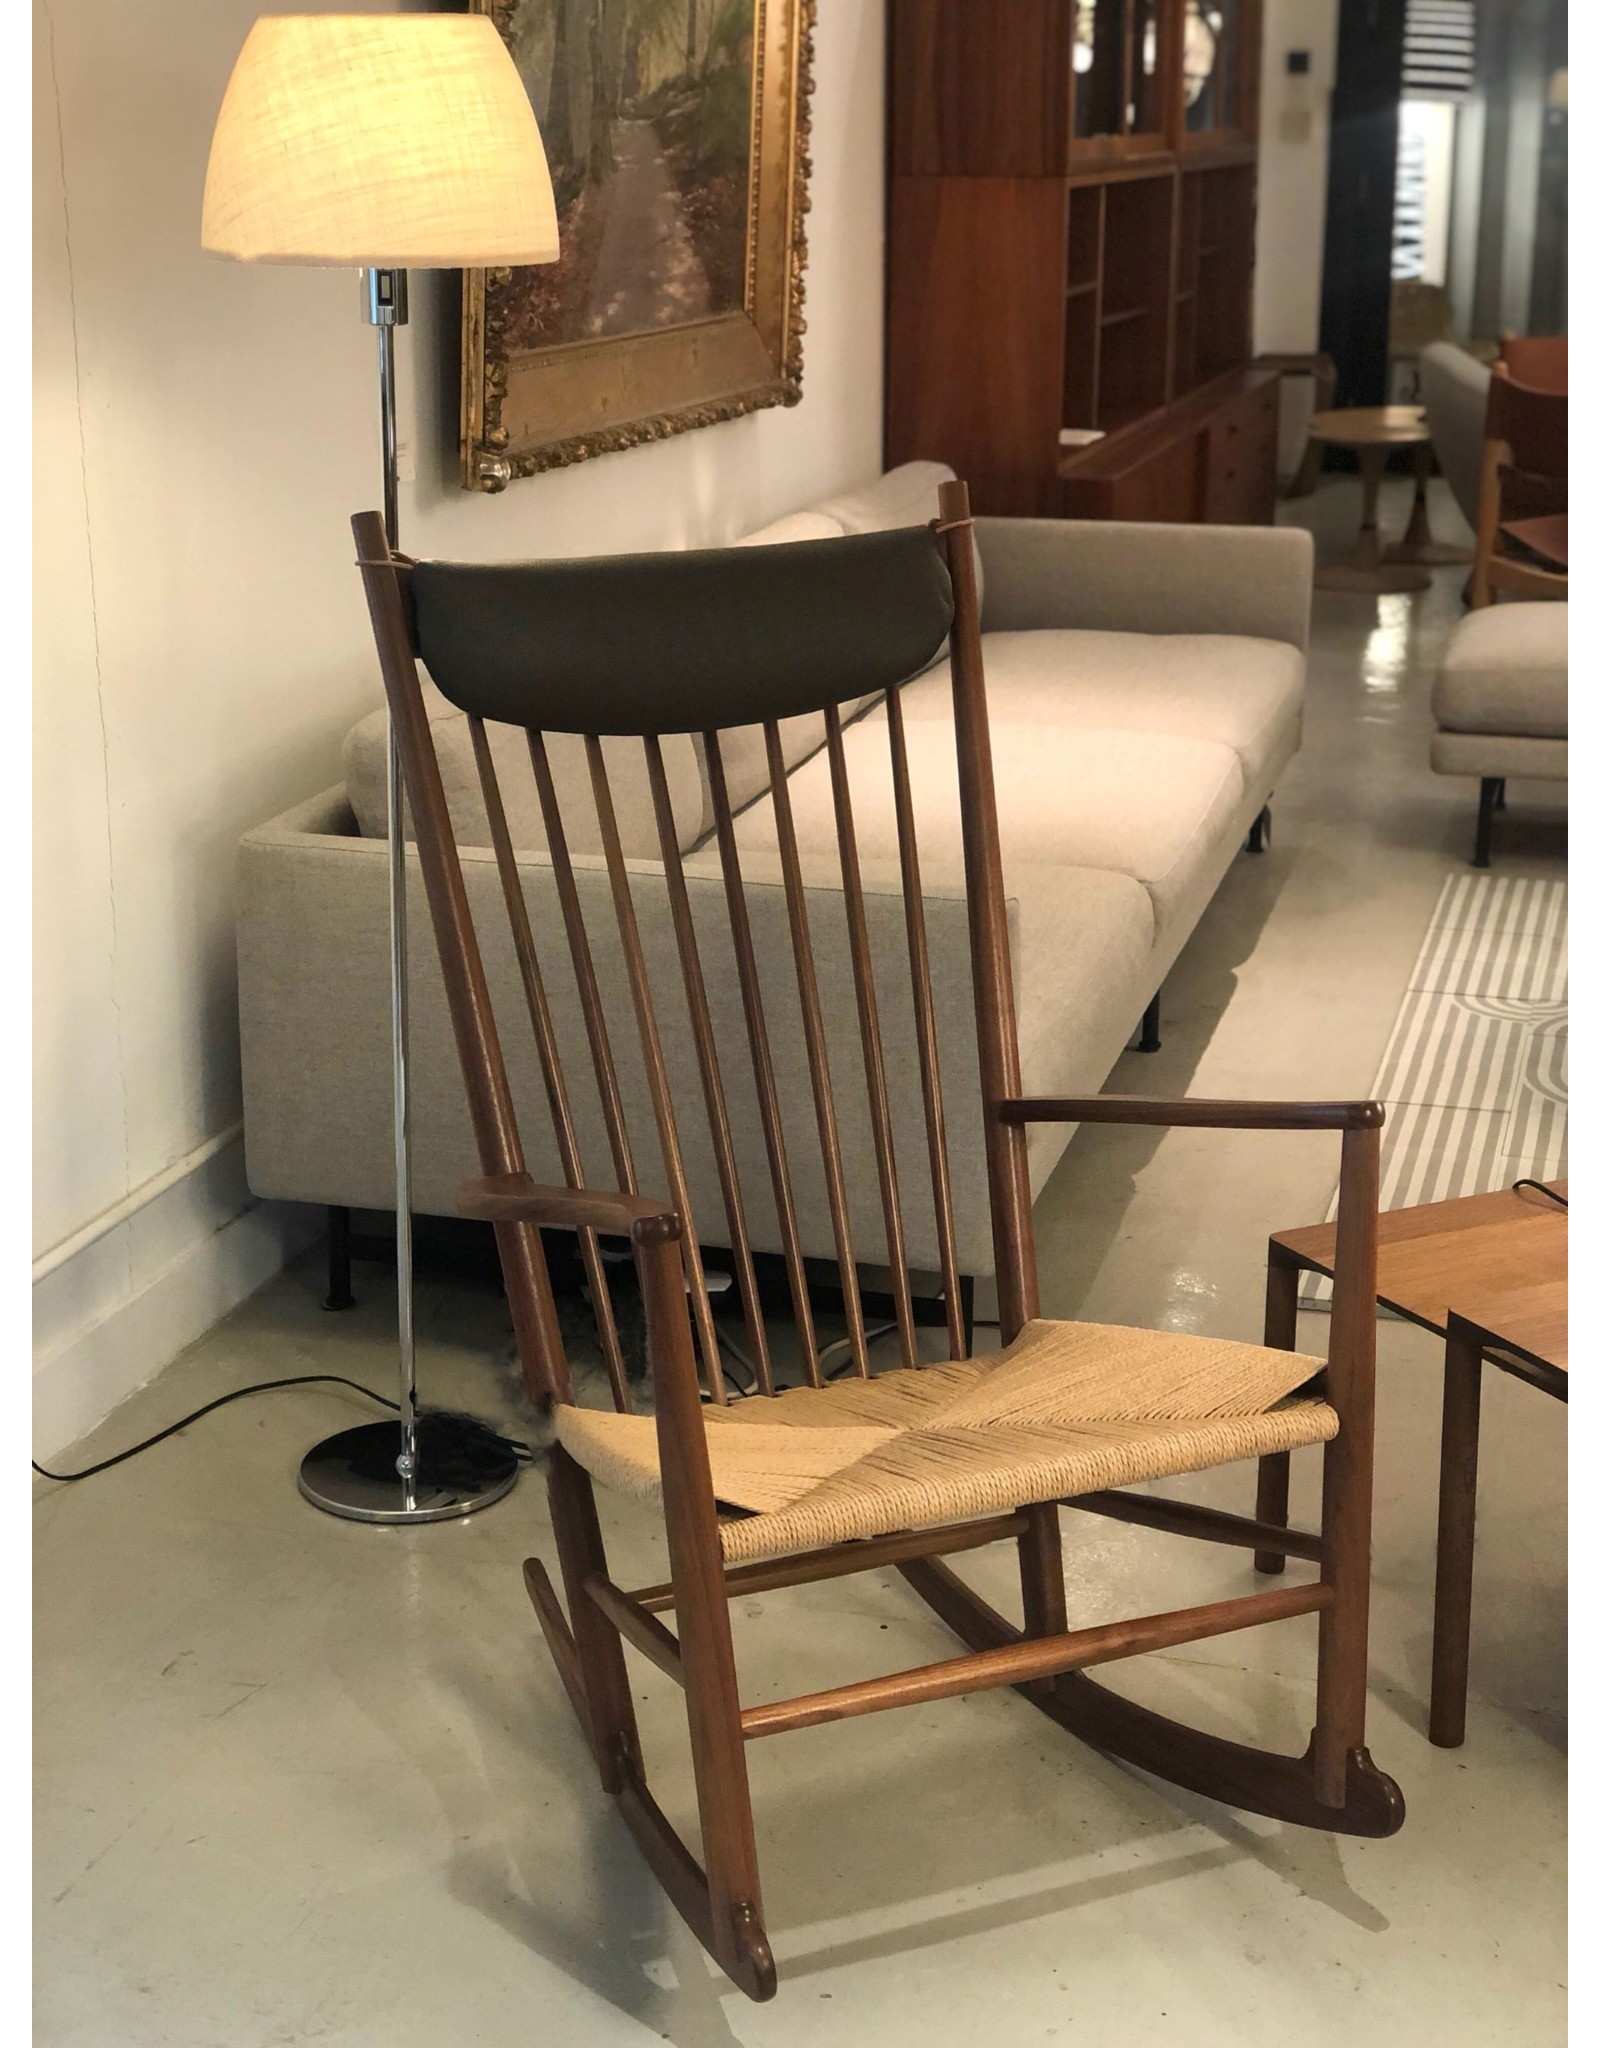 J16 75TH ANNIVERSARY ROCKING CHAIR WITH NECK CUSHION